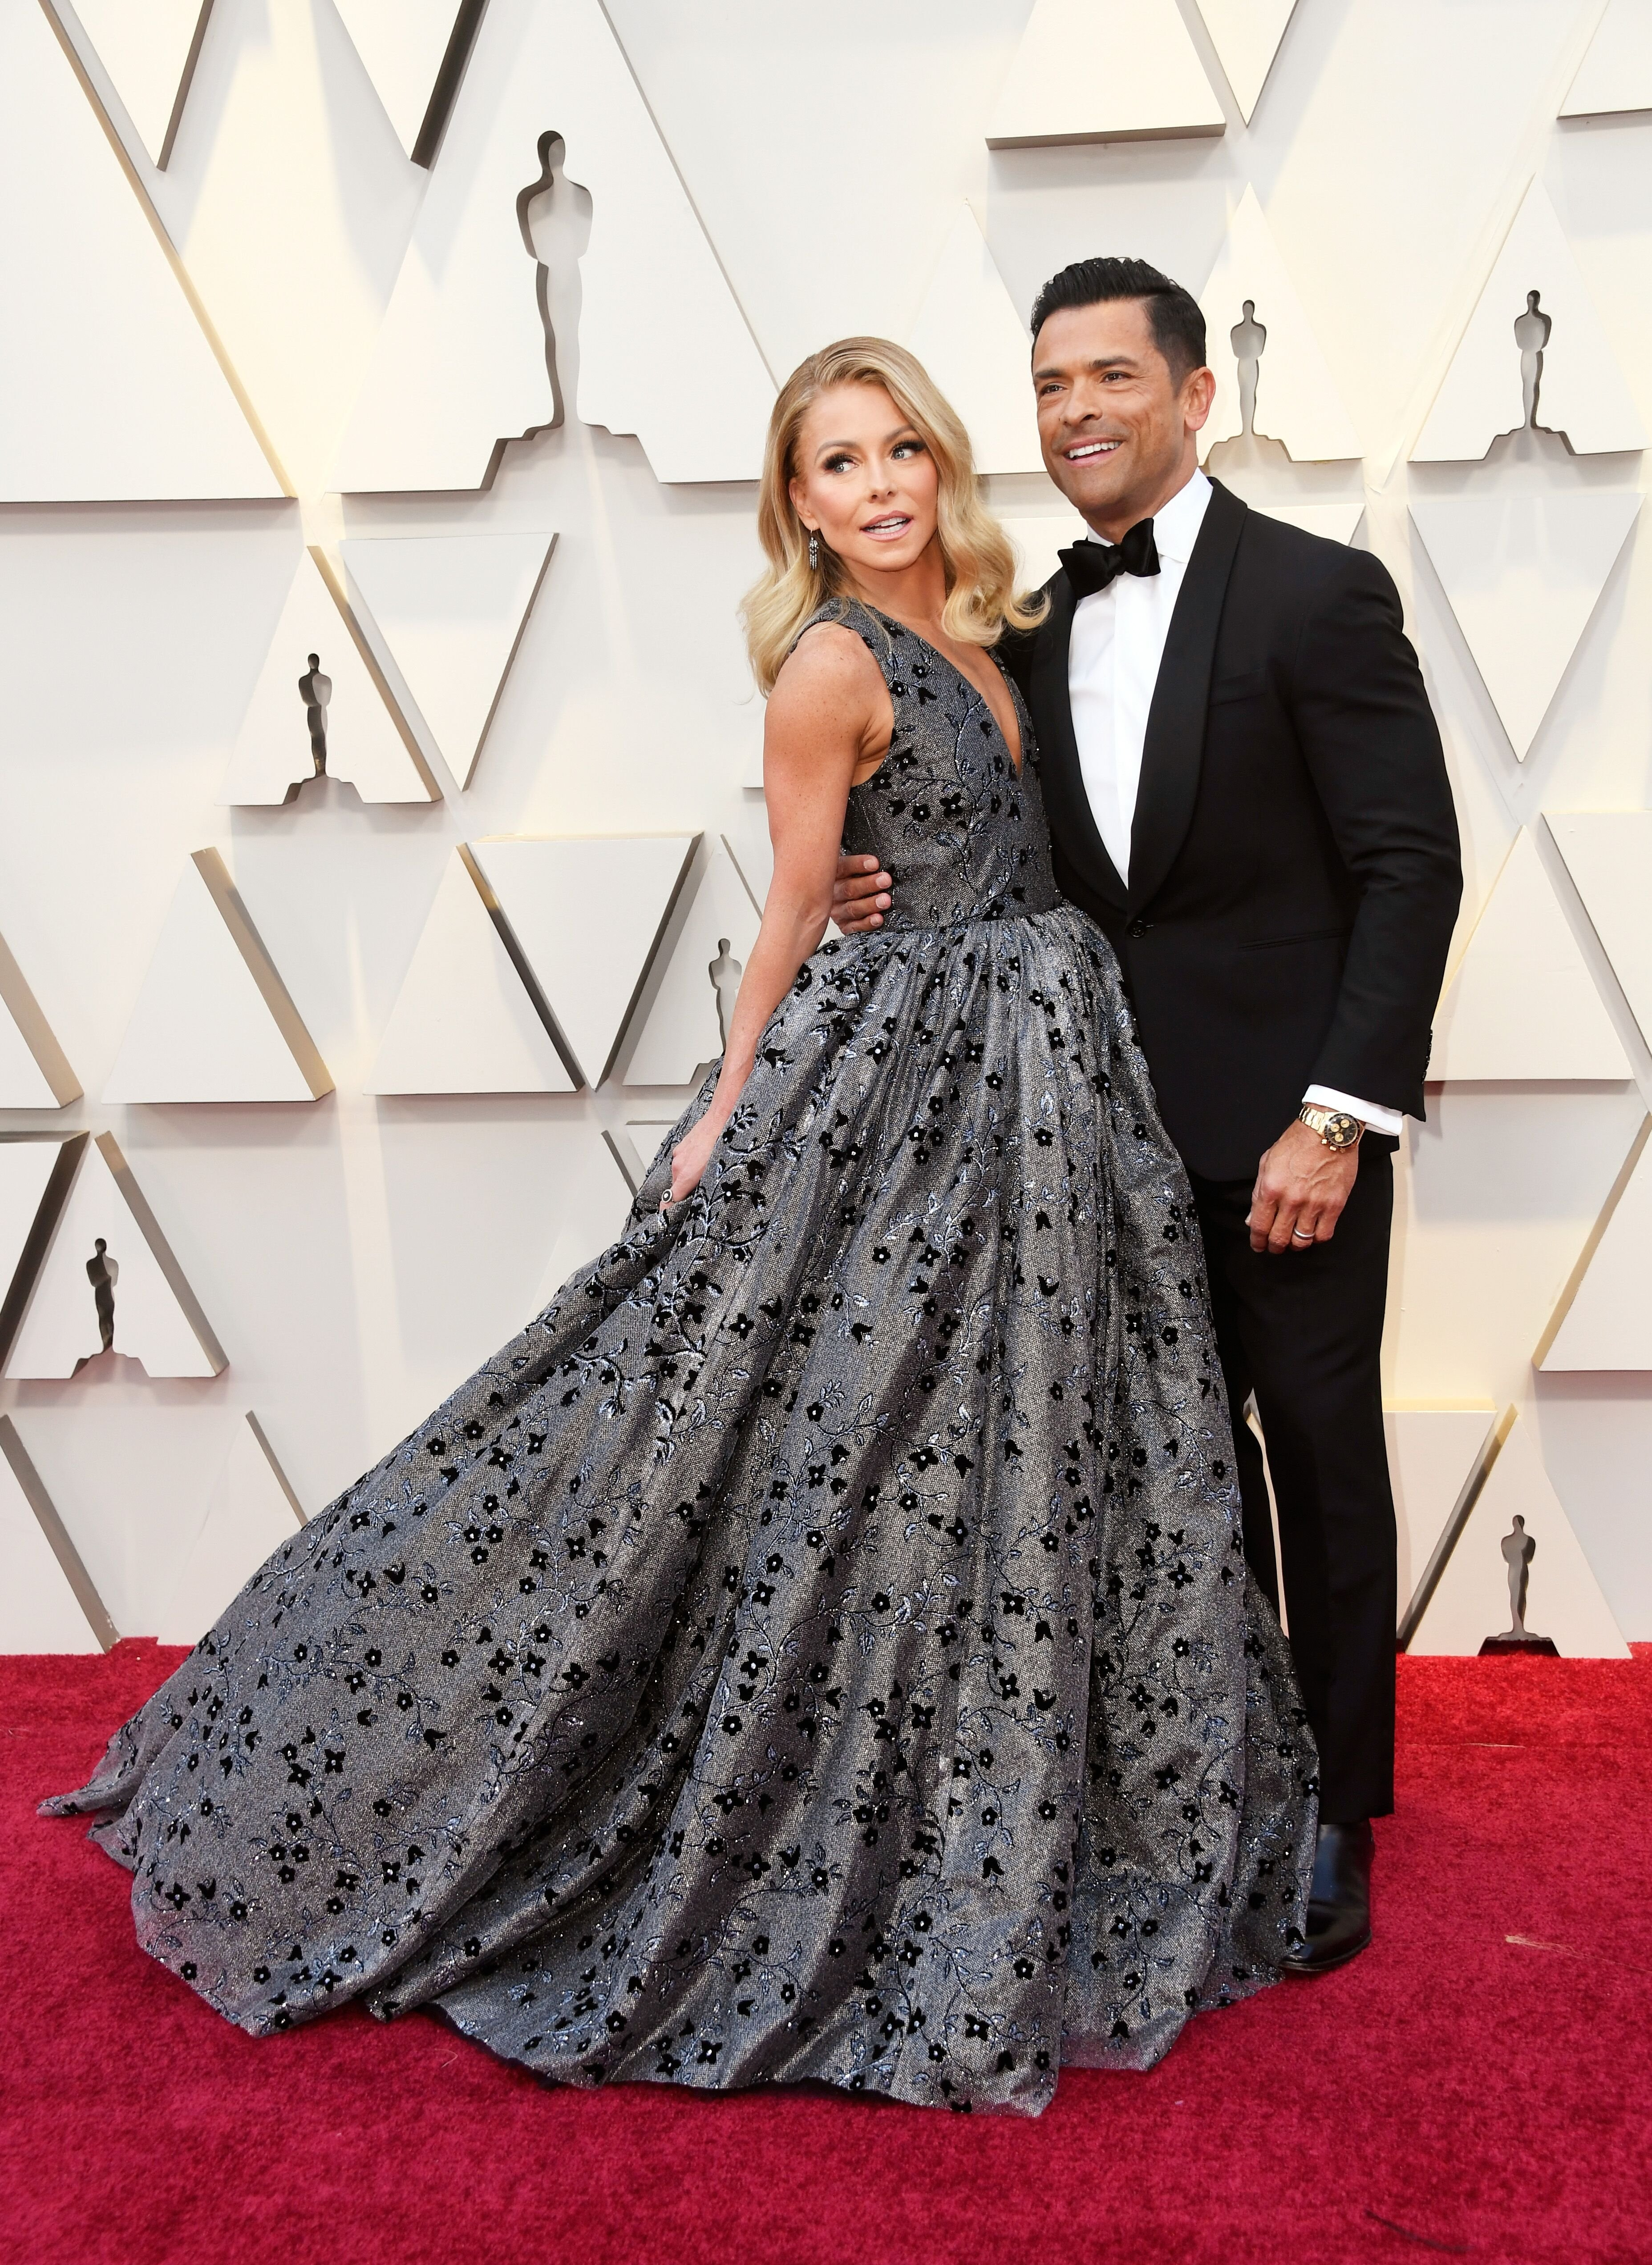 Kelly Ripa and husband Mark Consuelos at the Oscars/ Source: Getty Images